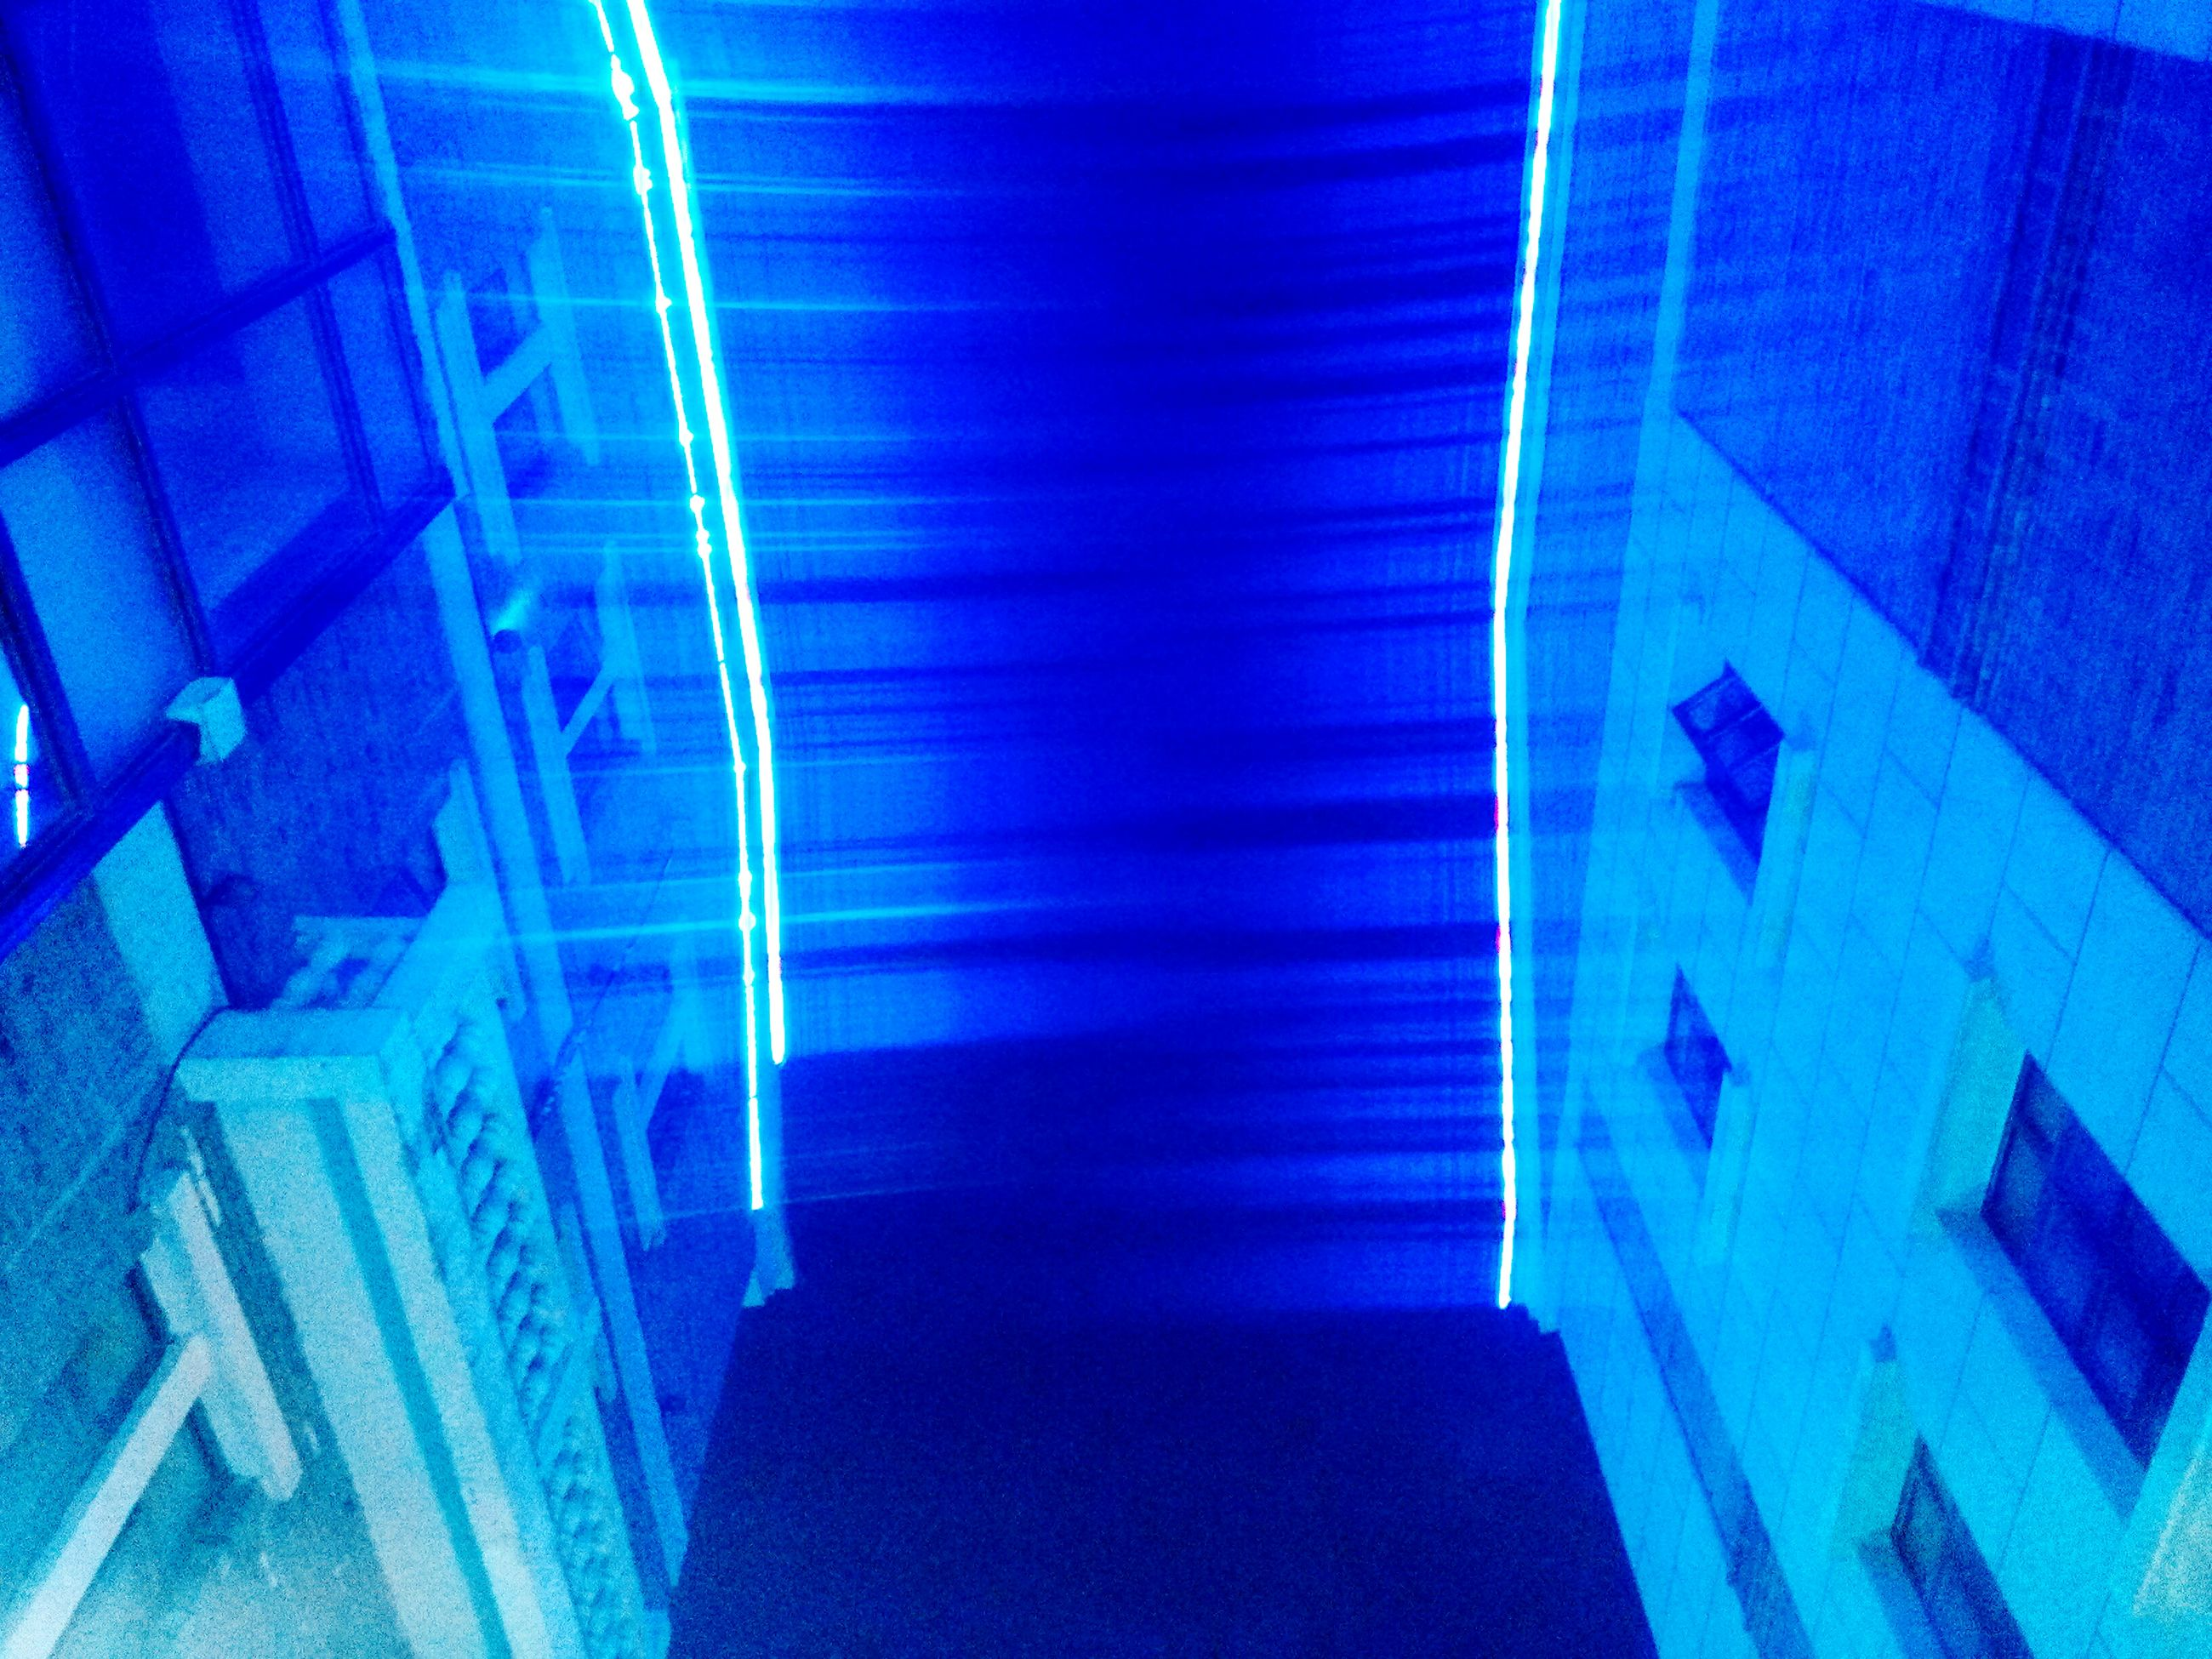 illuminated, indoors, blue, architecture, built structure, lighting equipment, ceiling, light - natural phenomenon, night, glowing, low angle view, pattern, wall - building feature, modern, electric light, sunlight, light, building, light beam, no people